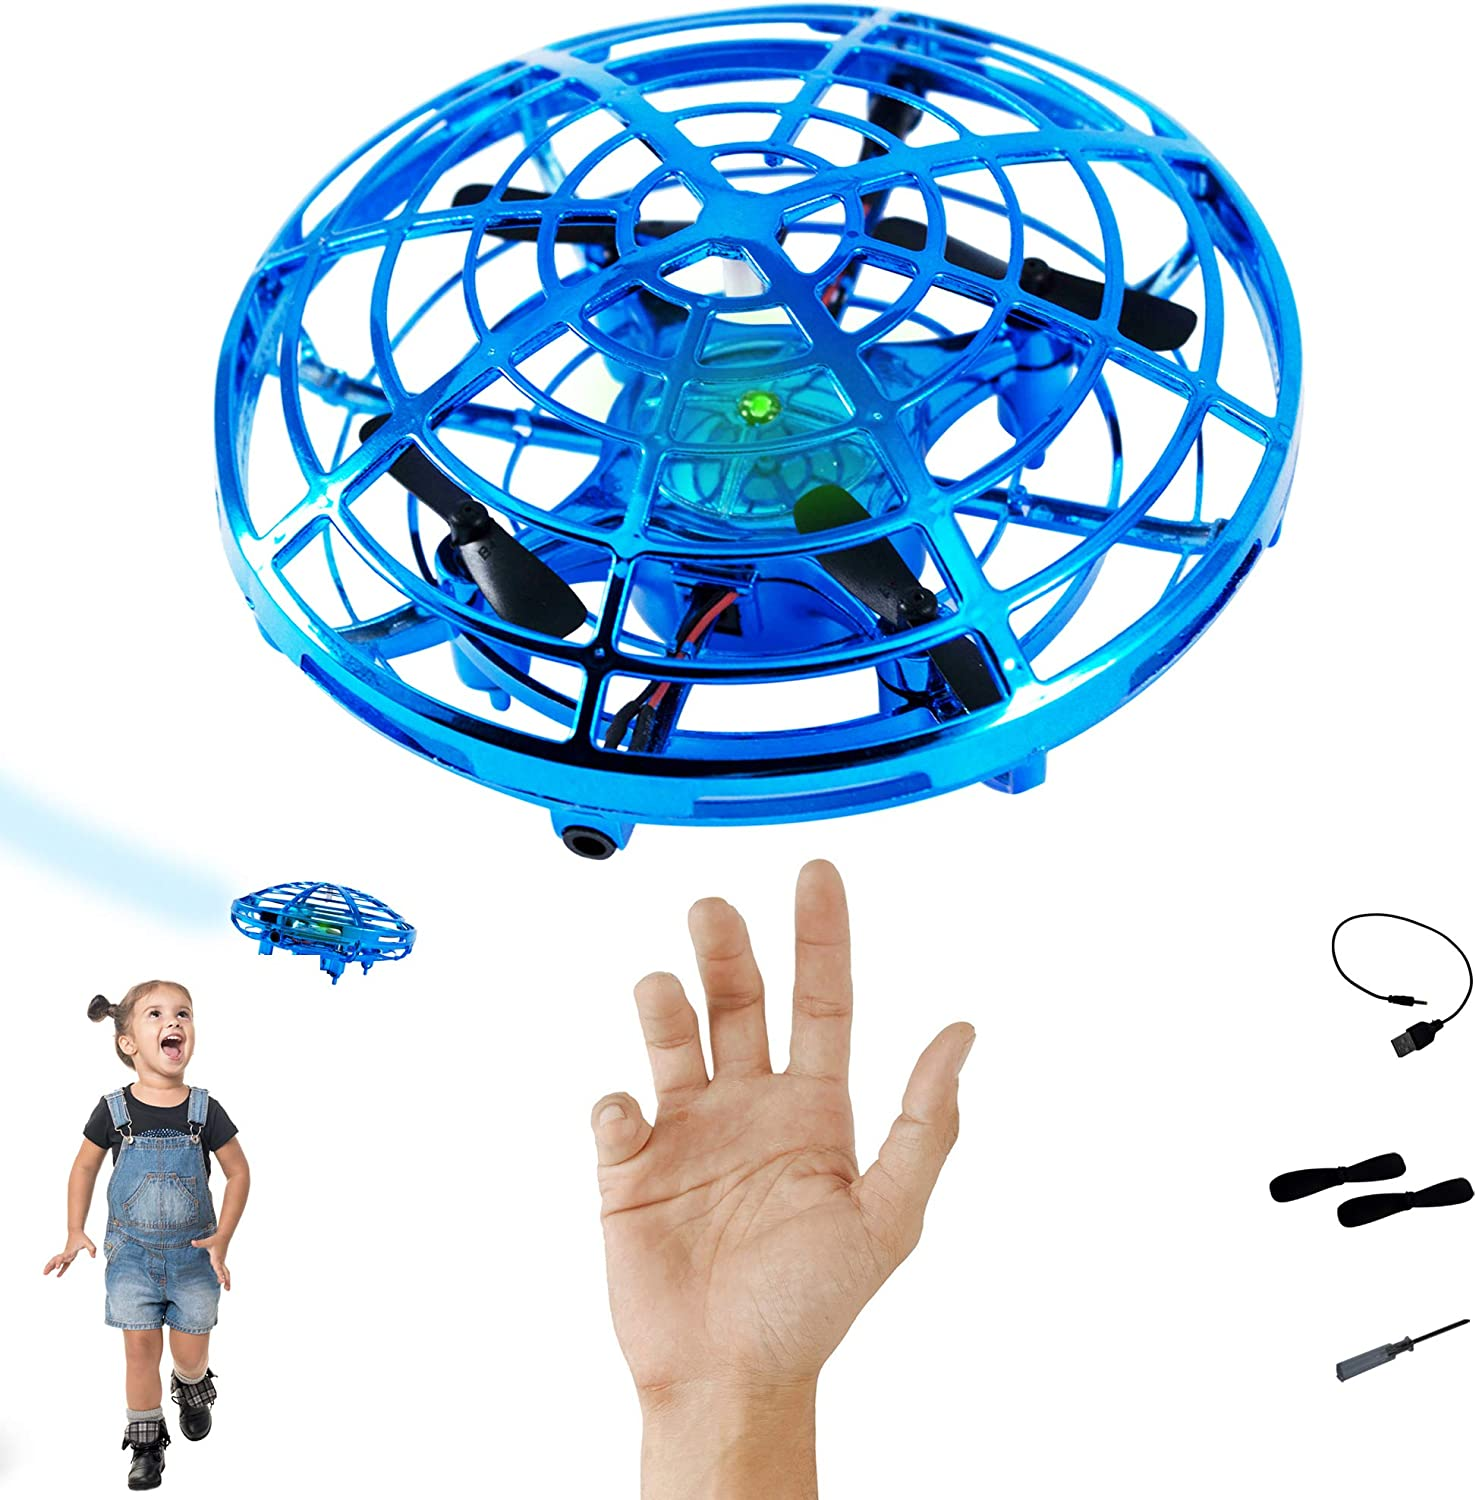 Hand Controlled Drones for Kids | Mini Drone | UFO Interactive Aircraft | Flying Ball | Alien Hovercraft | Indoor Pocket Hover Toy | Teens Adults Boys Girls Stem Toys | Hands Free Gadgets | Quadcopter